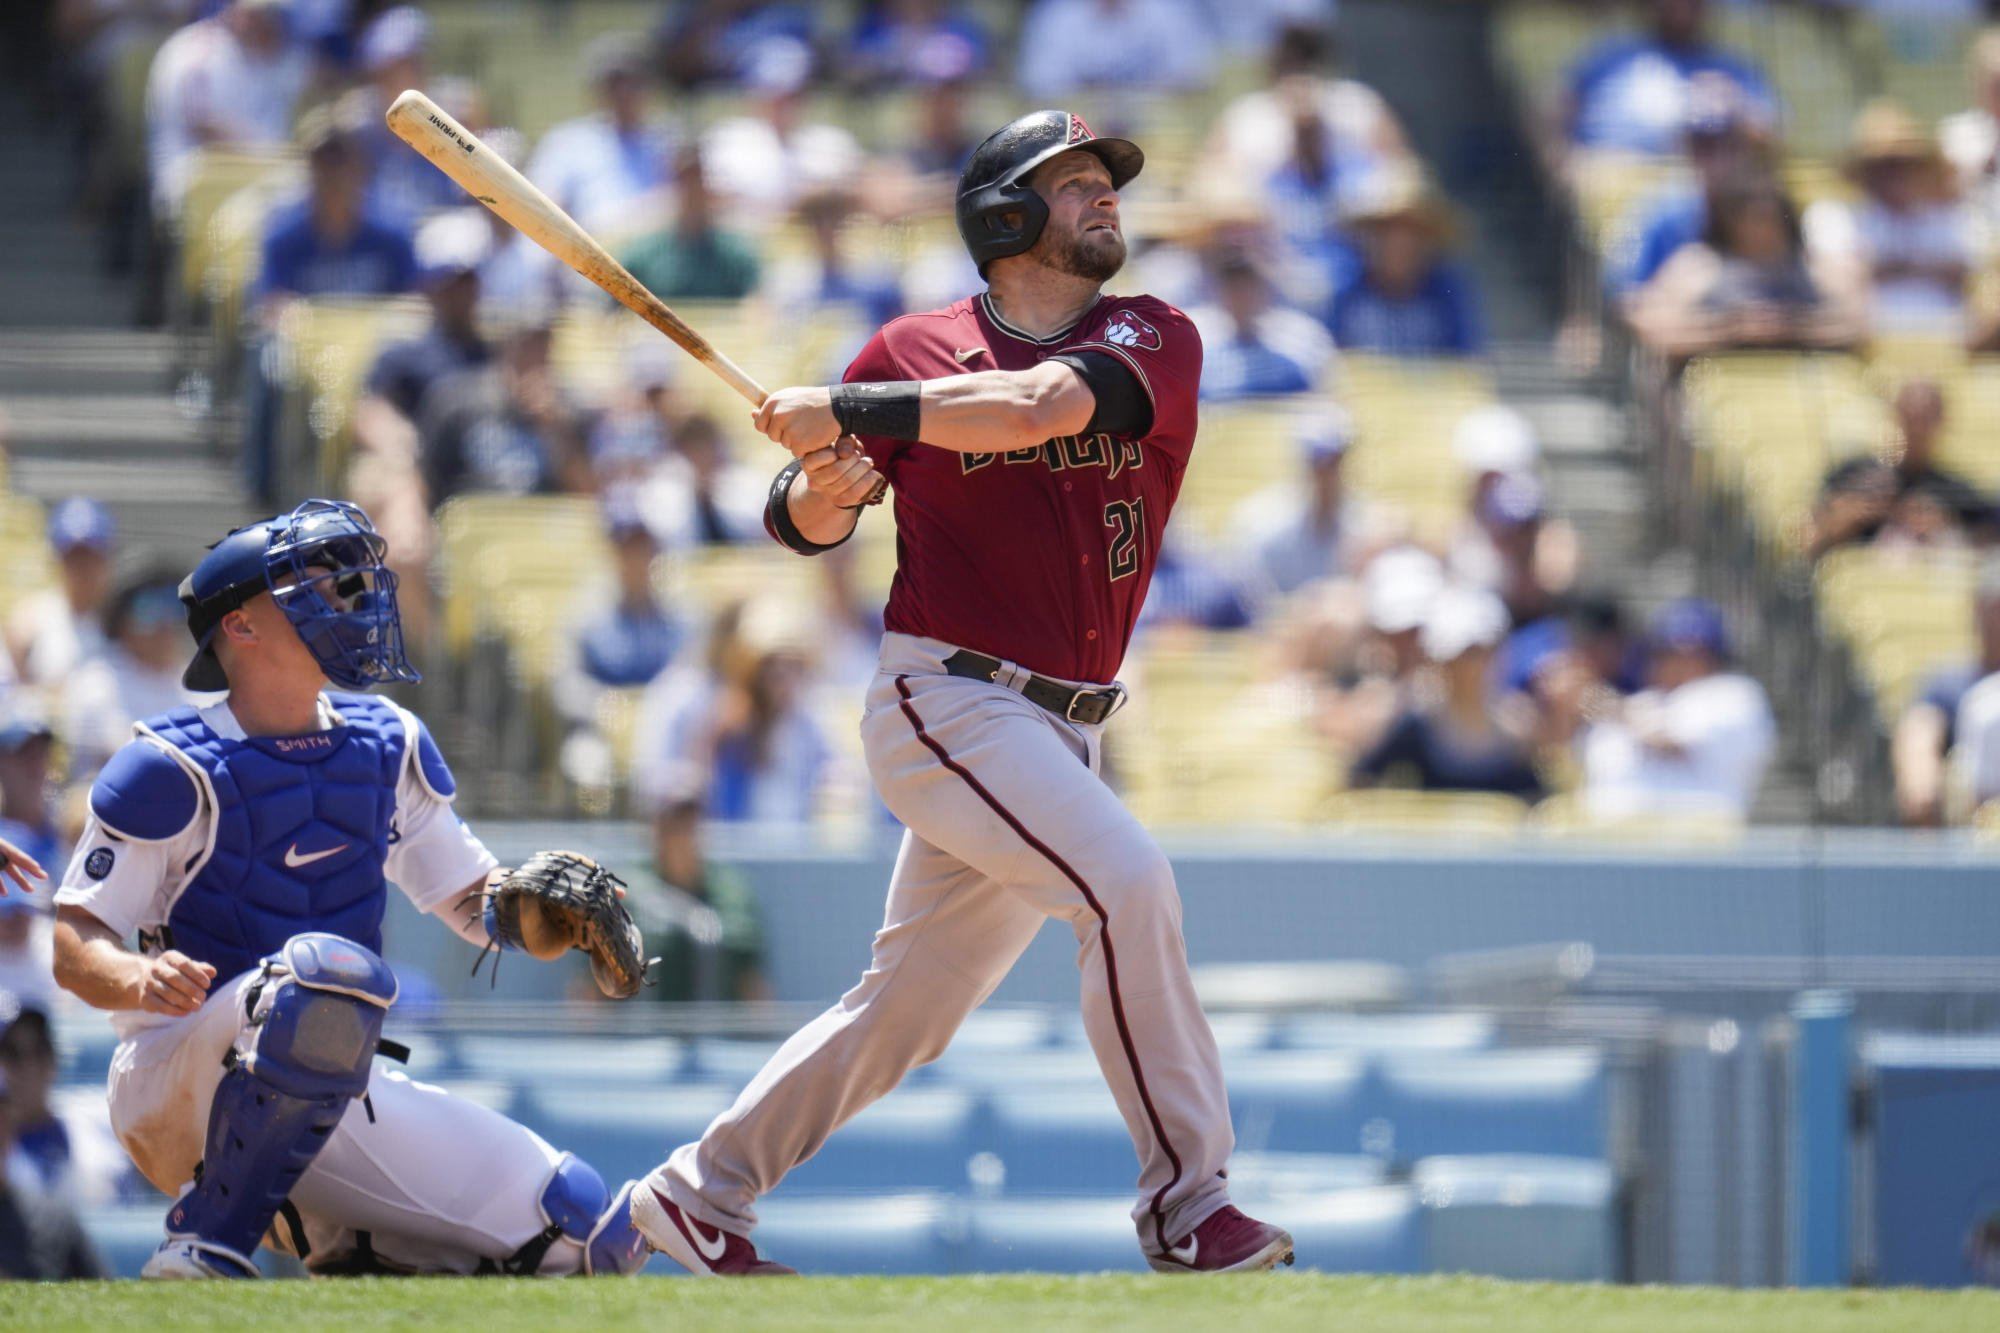 Braves swing another deal, get catcher Vogt from Arizona